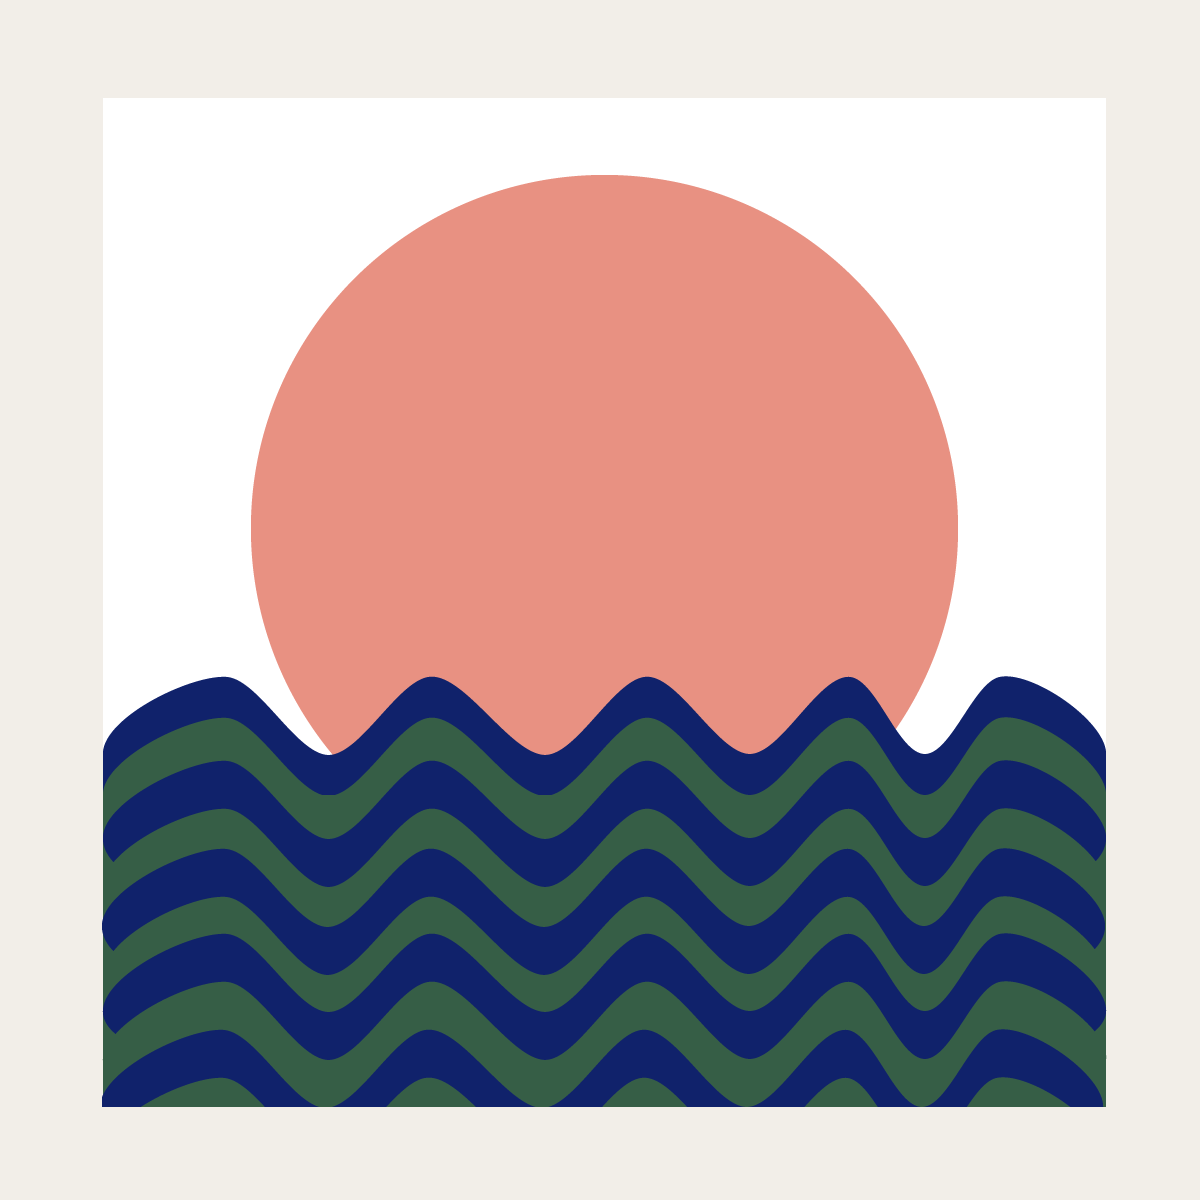 Sea, sun and land illustration by Naomi Anne Little